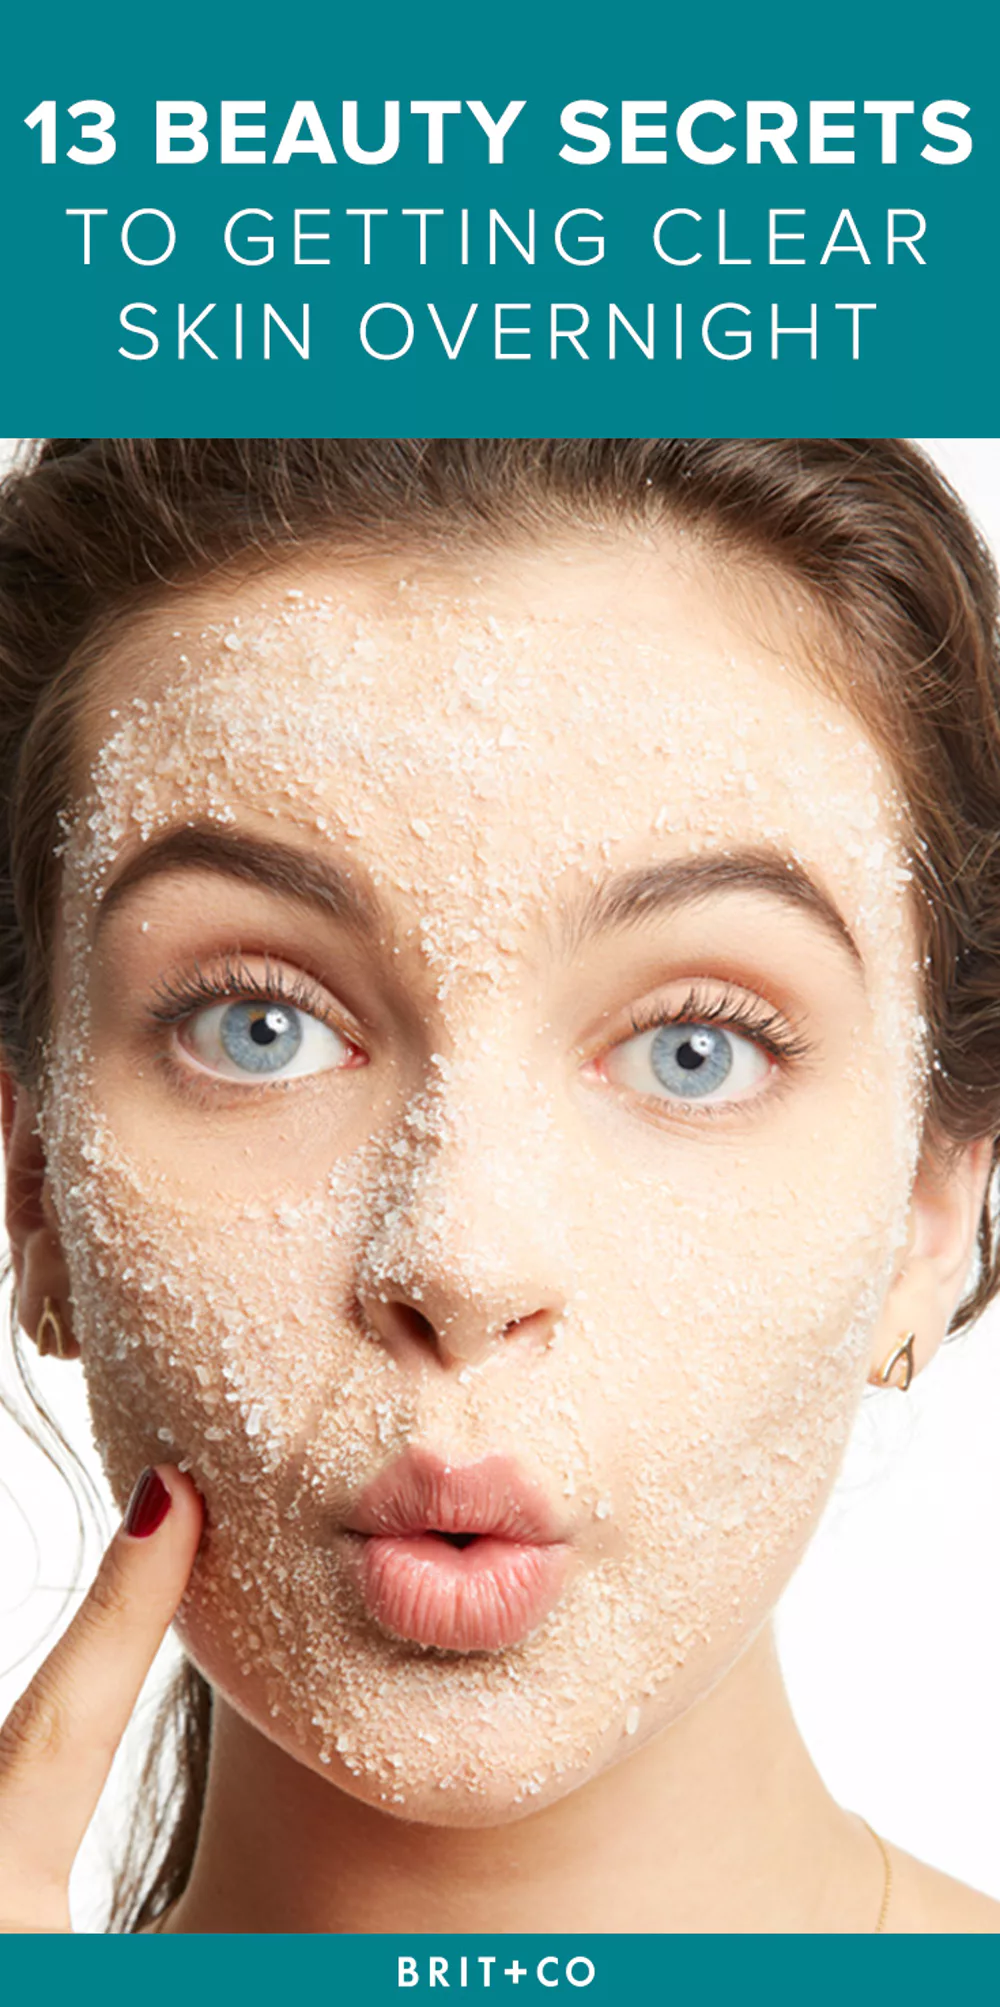 10 Beauty secrets to getting clear skin overnight.